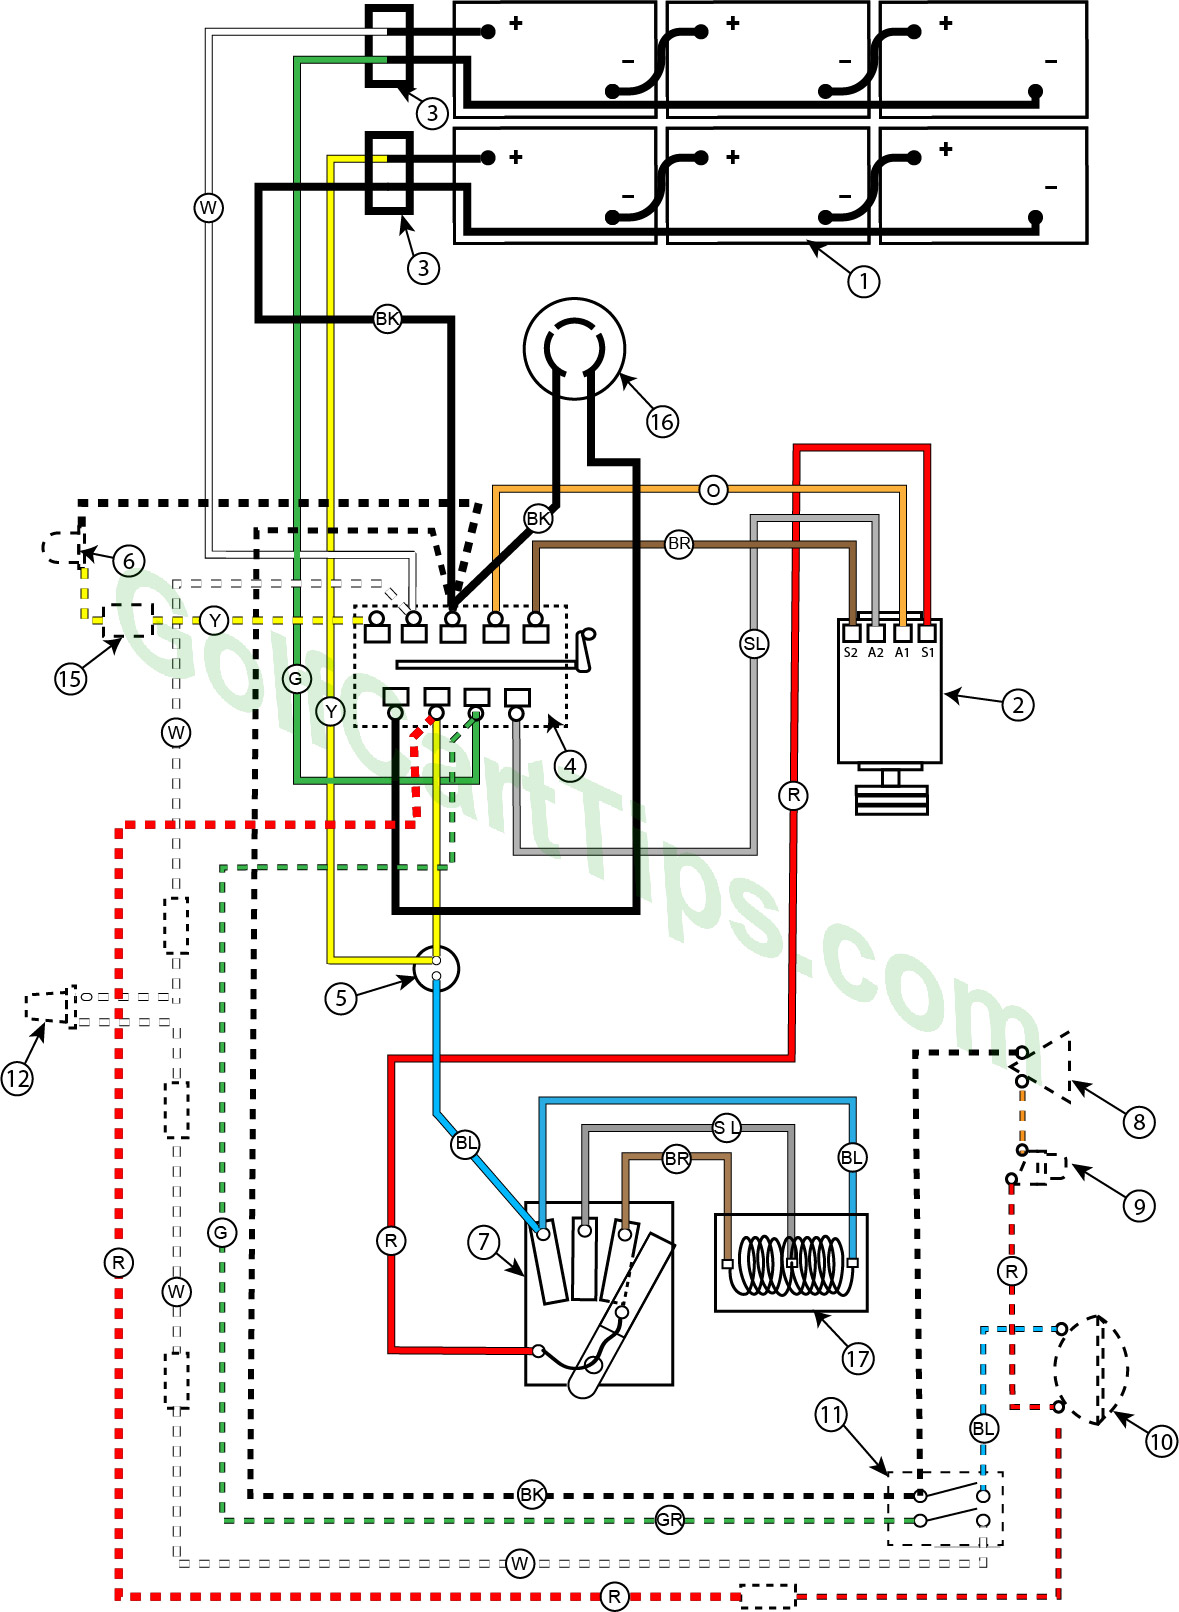 hight resolution of club car 24v wiring diagram wiring diagram fascinatingclub car 24v wiring diagram wiring diagram basic club